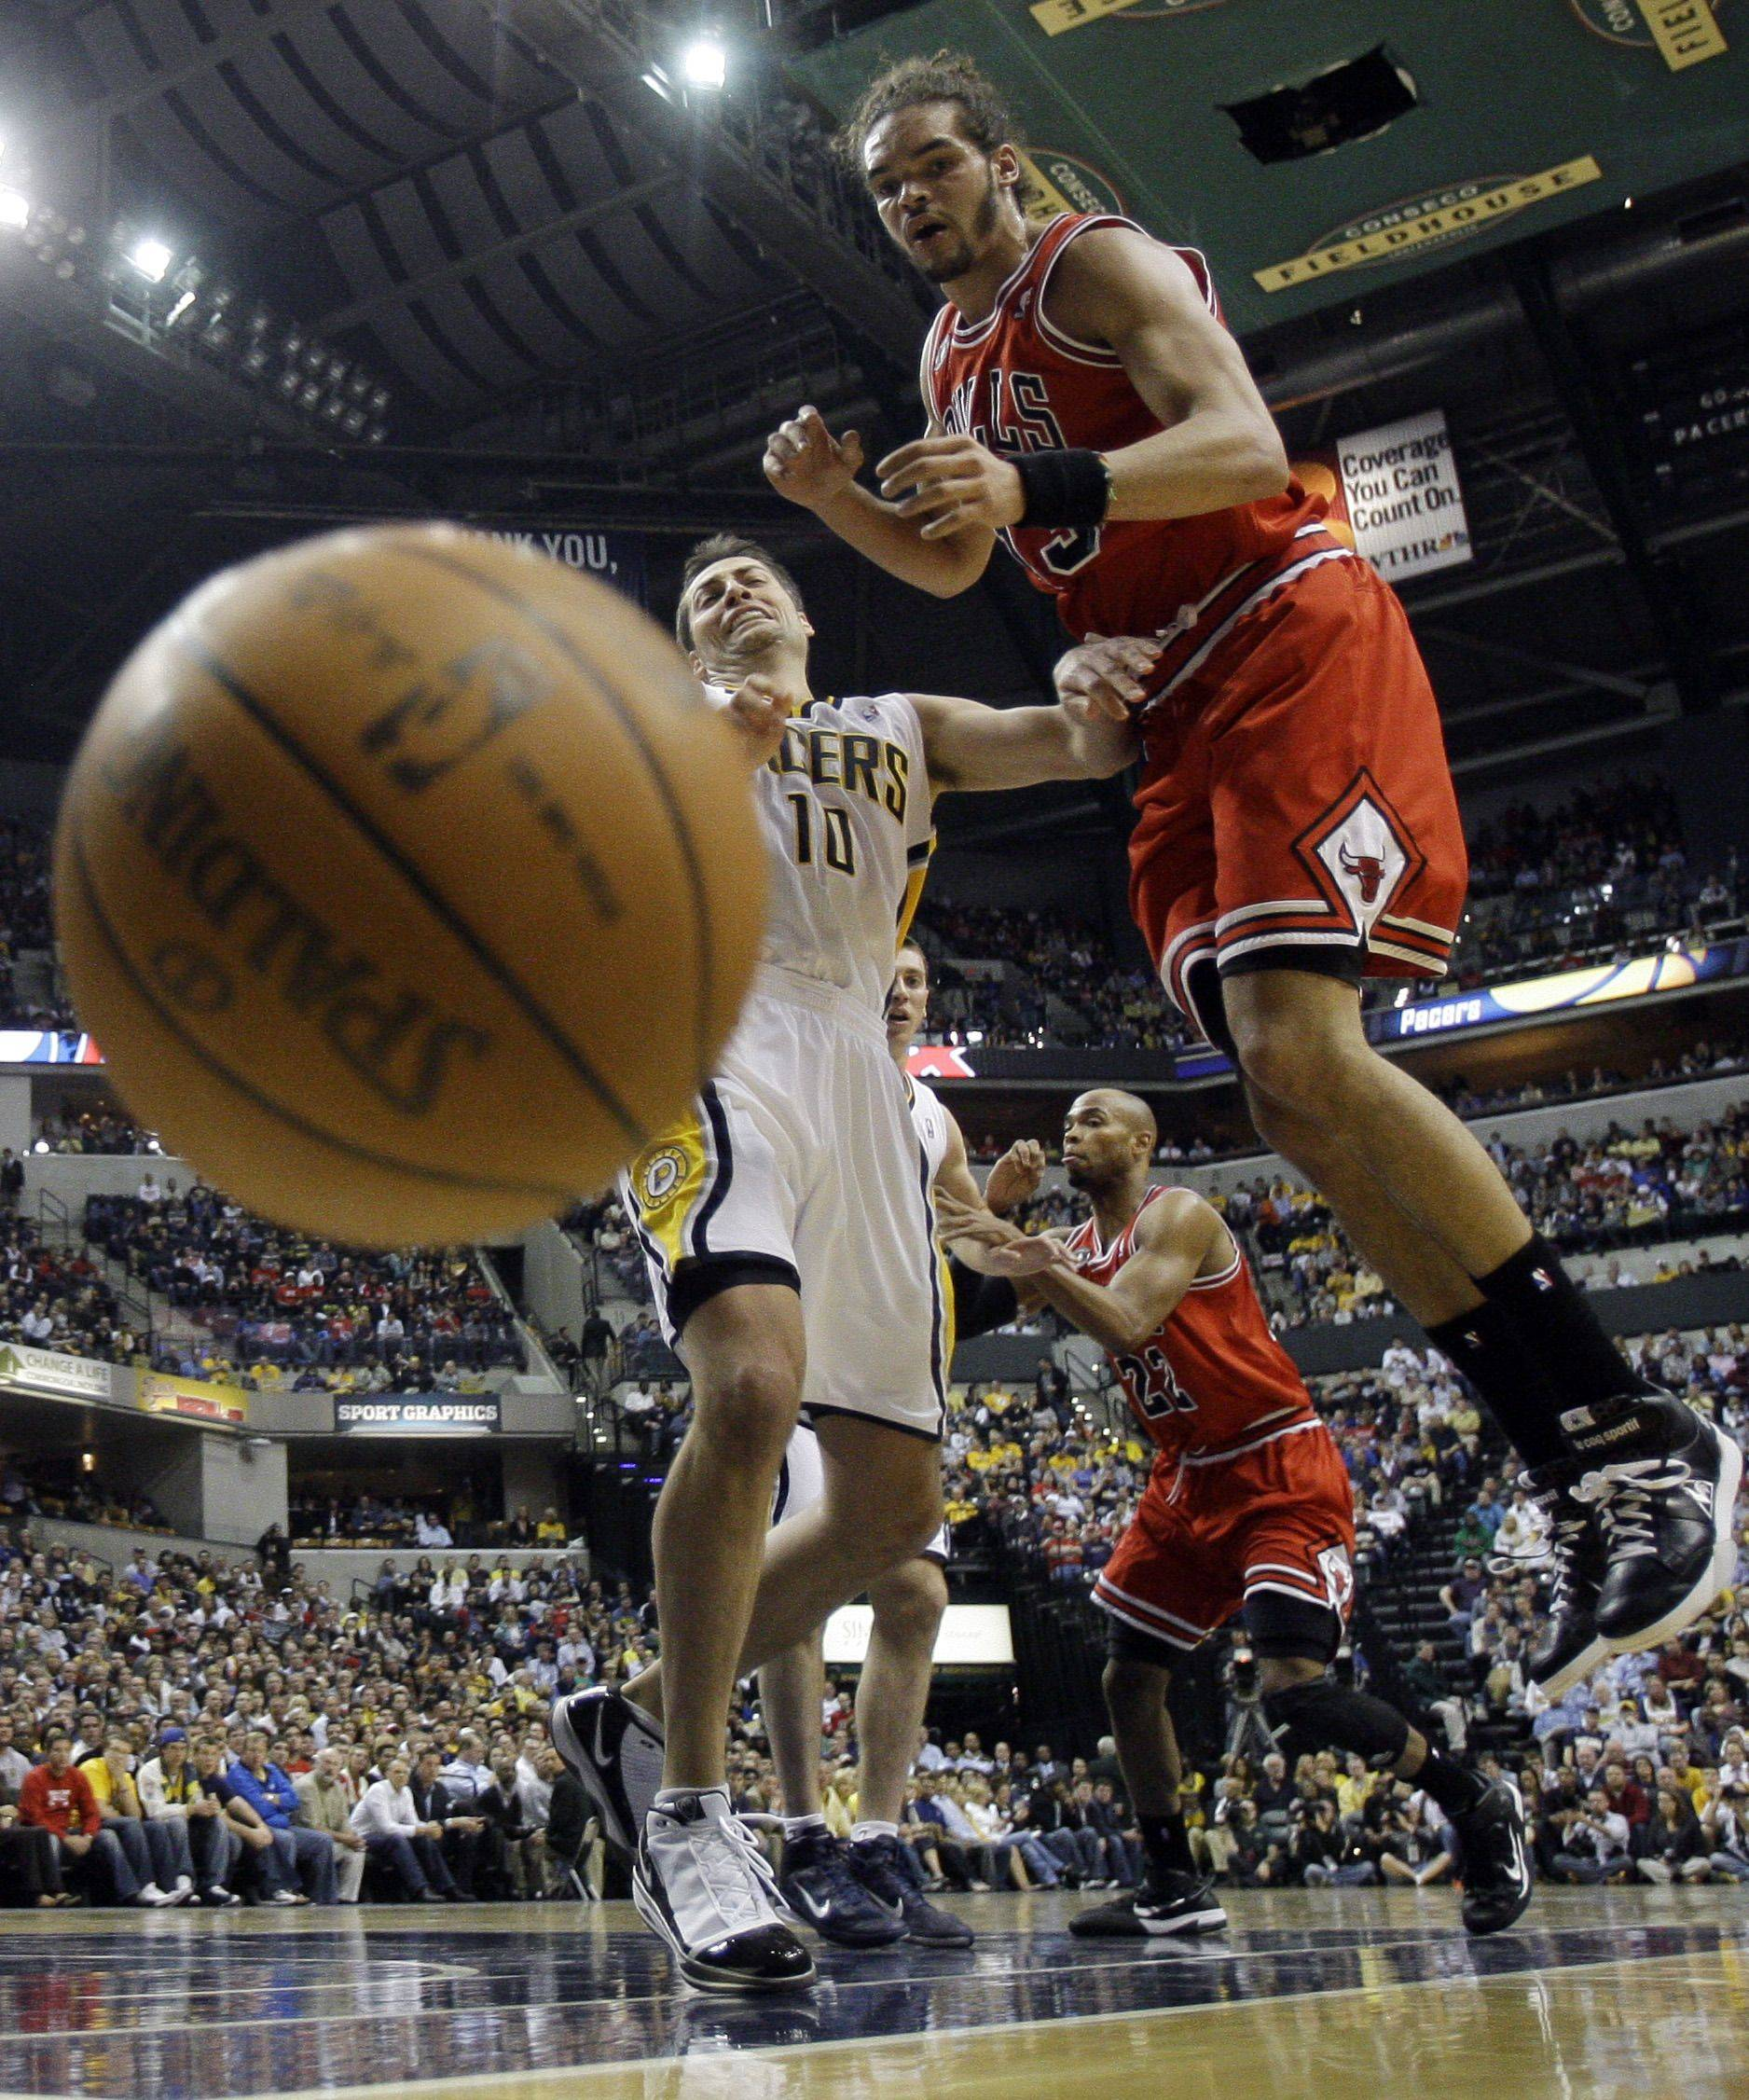 Indiana Pacers' Jeff Foster (10) and Chicago Bulls' Joakim Noah (13) battle for a loose ball during the first half.